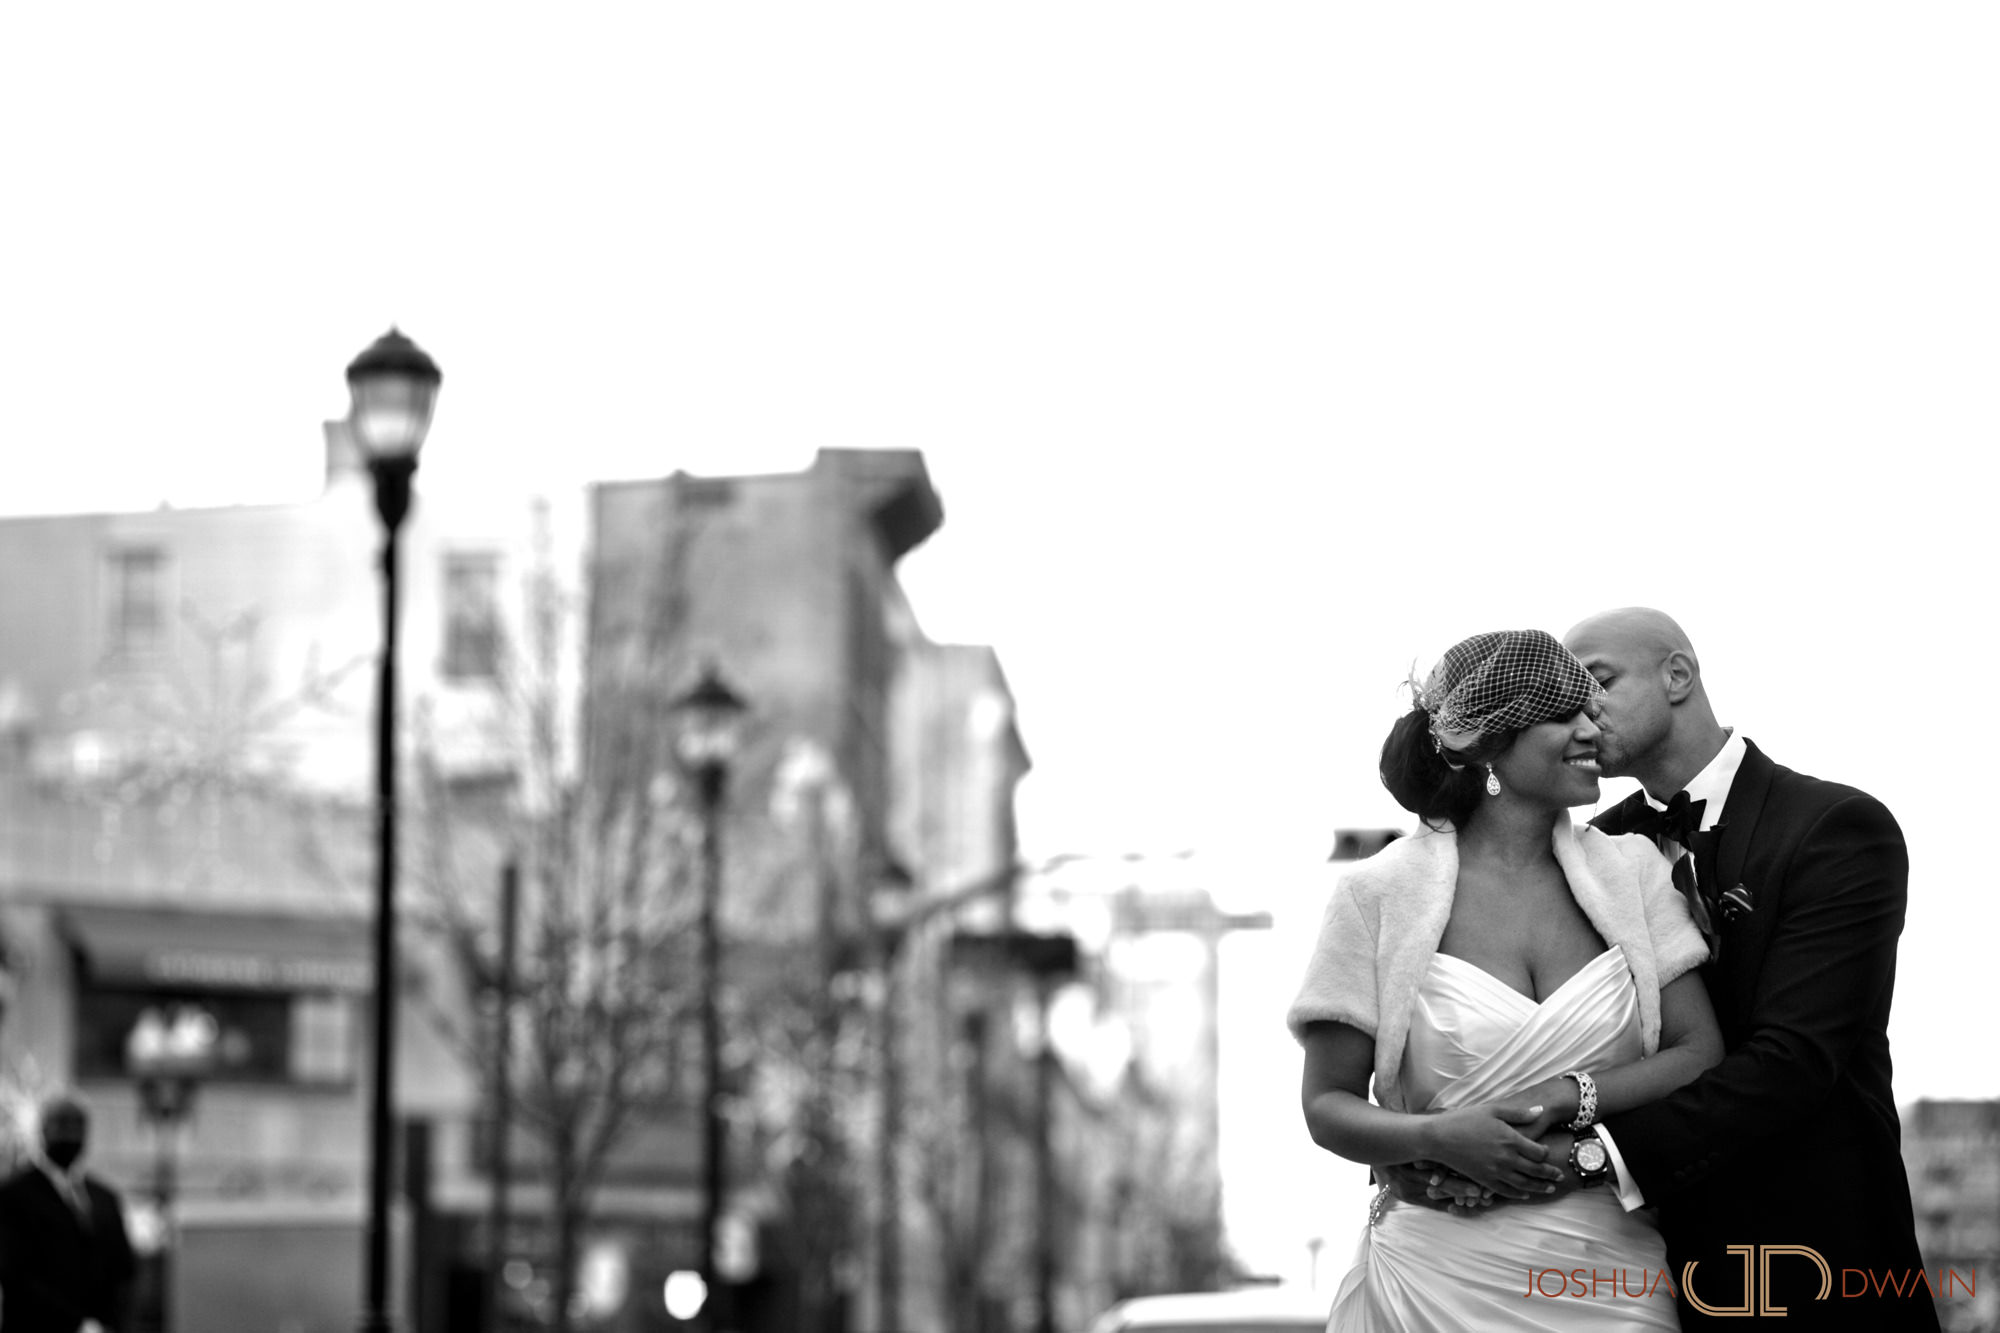 carol-shiloh-013-the-palace-somerset-new-jerseywedding-photographer-joshua-dwain-2011-11-25_cs_508